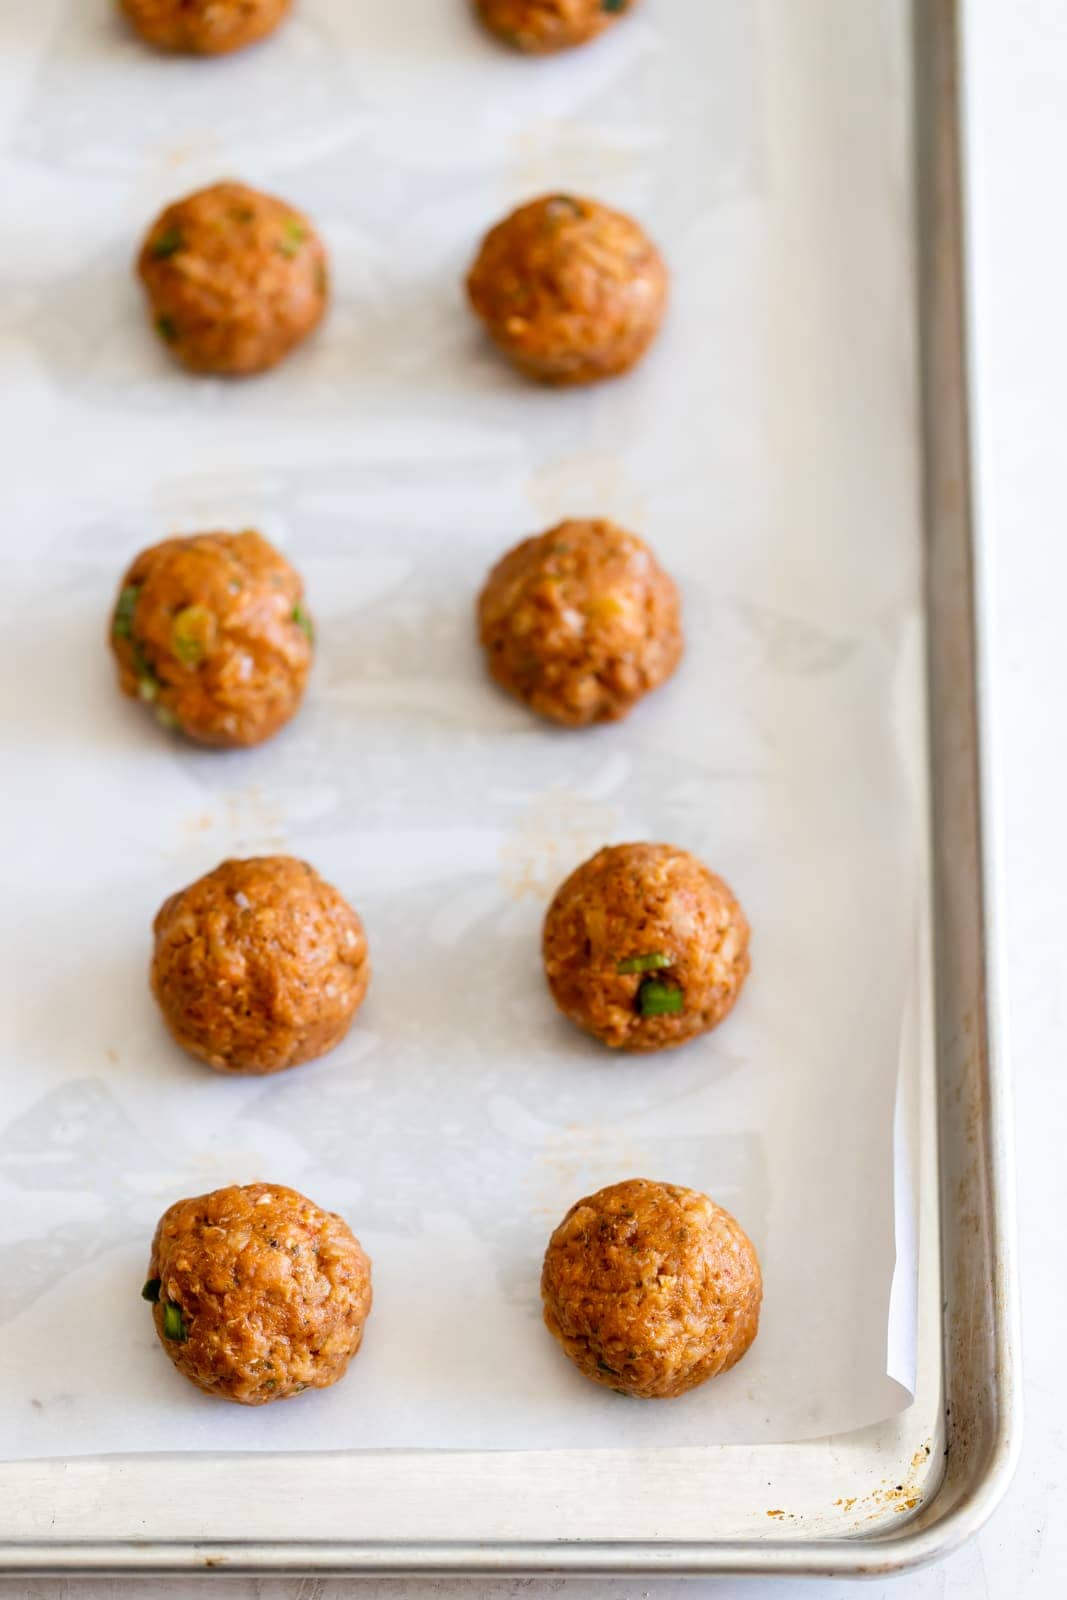 Easy to make, moist, flavorful, and healthy turkey meatballs made with few ingredients and no breadcrumbs. Ready in just 10 minutes!